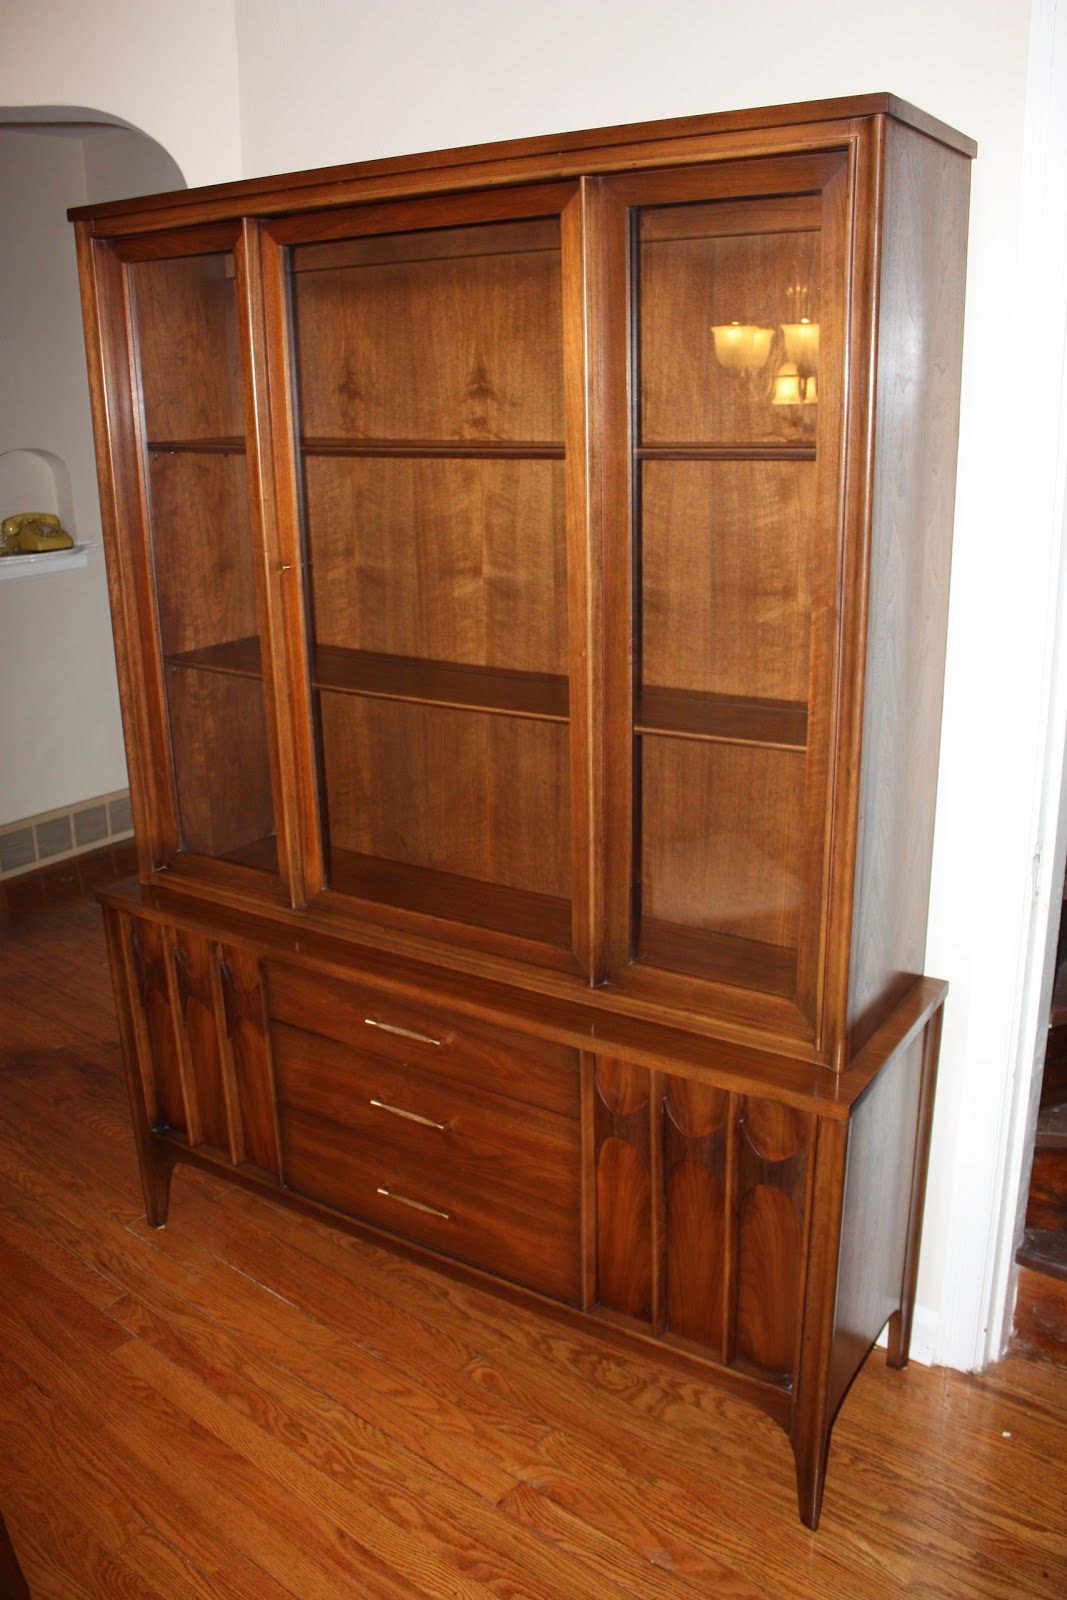 vintage draper cabinets china cabinet viennese bombe craigslist collection dorothy on pin